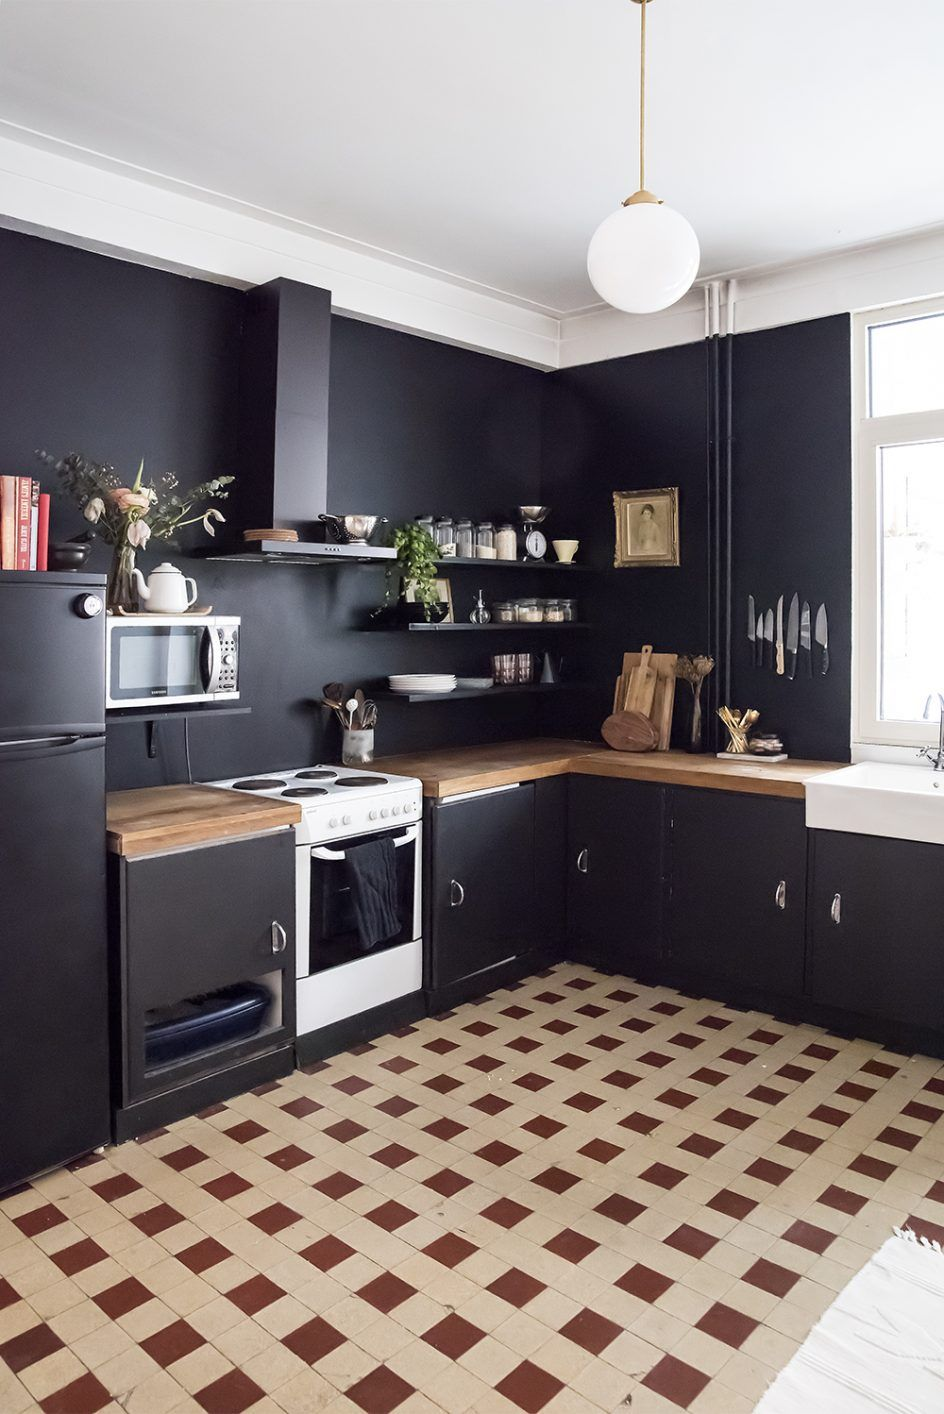 20 Kitchen Wall Ideas Elegant Wood Paneling In Decorating Kitchen Wall Timeless Kitchen Kitchen Interior Black Kitchens